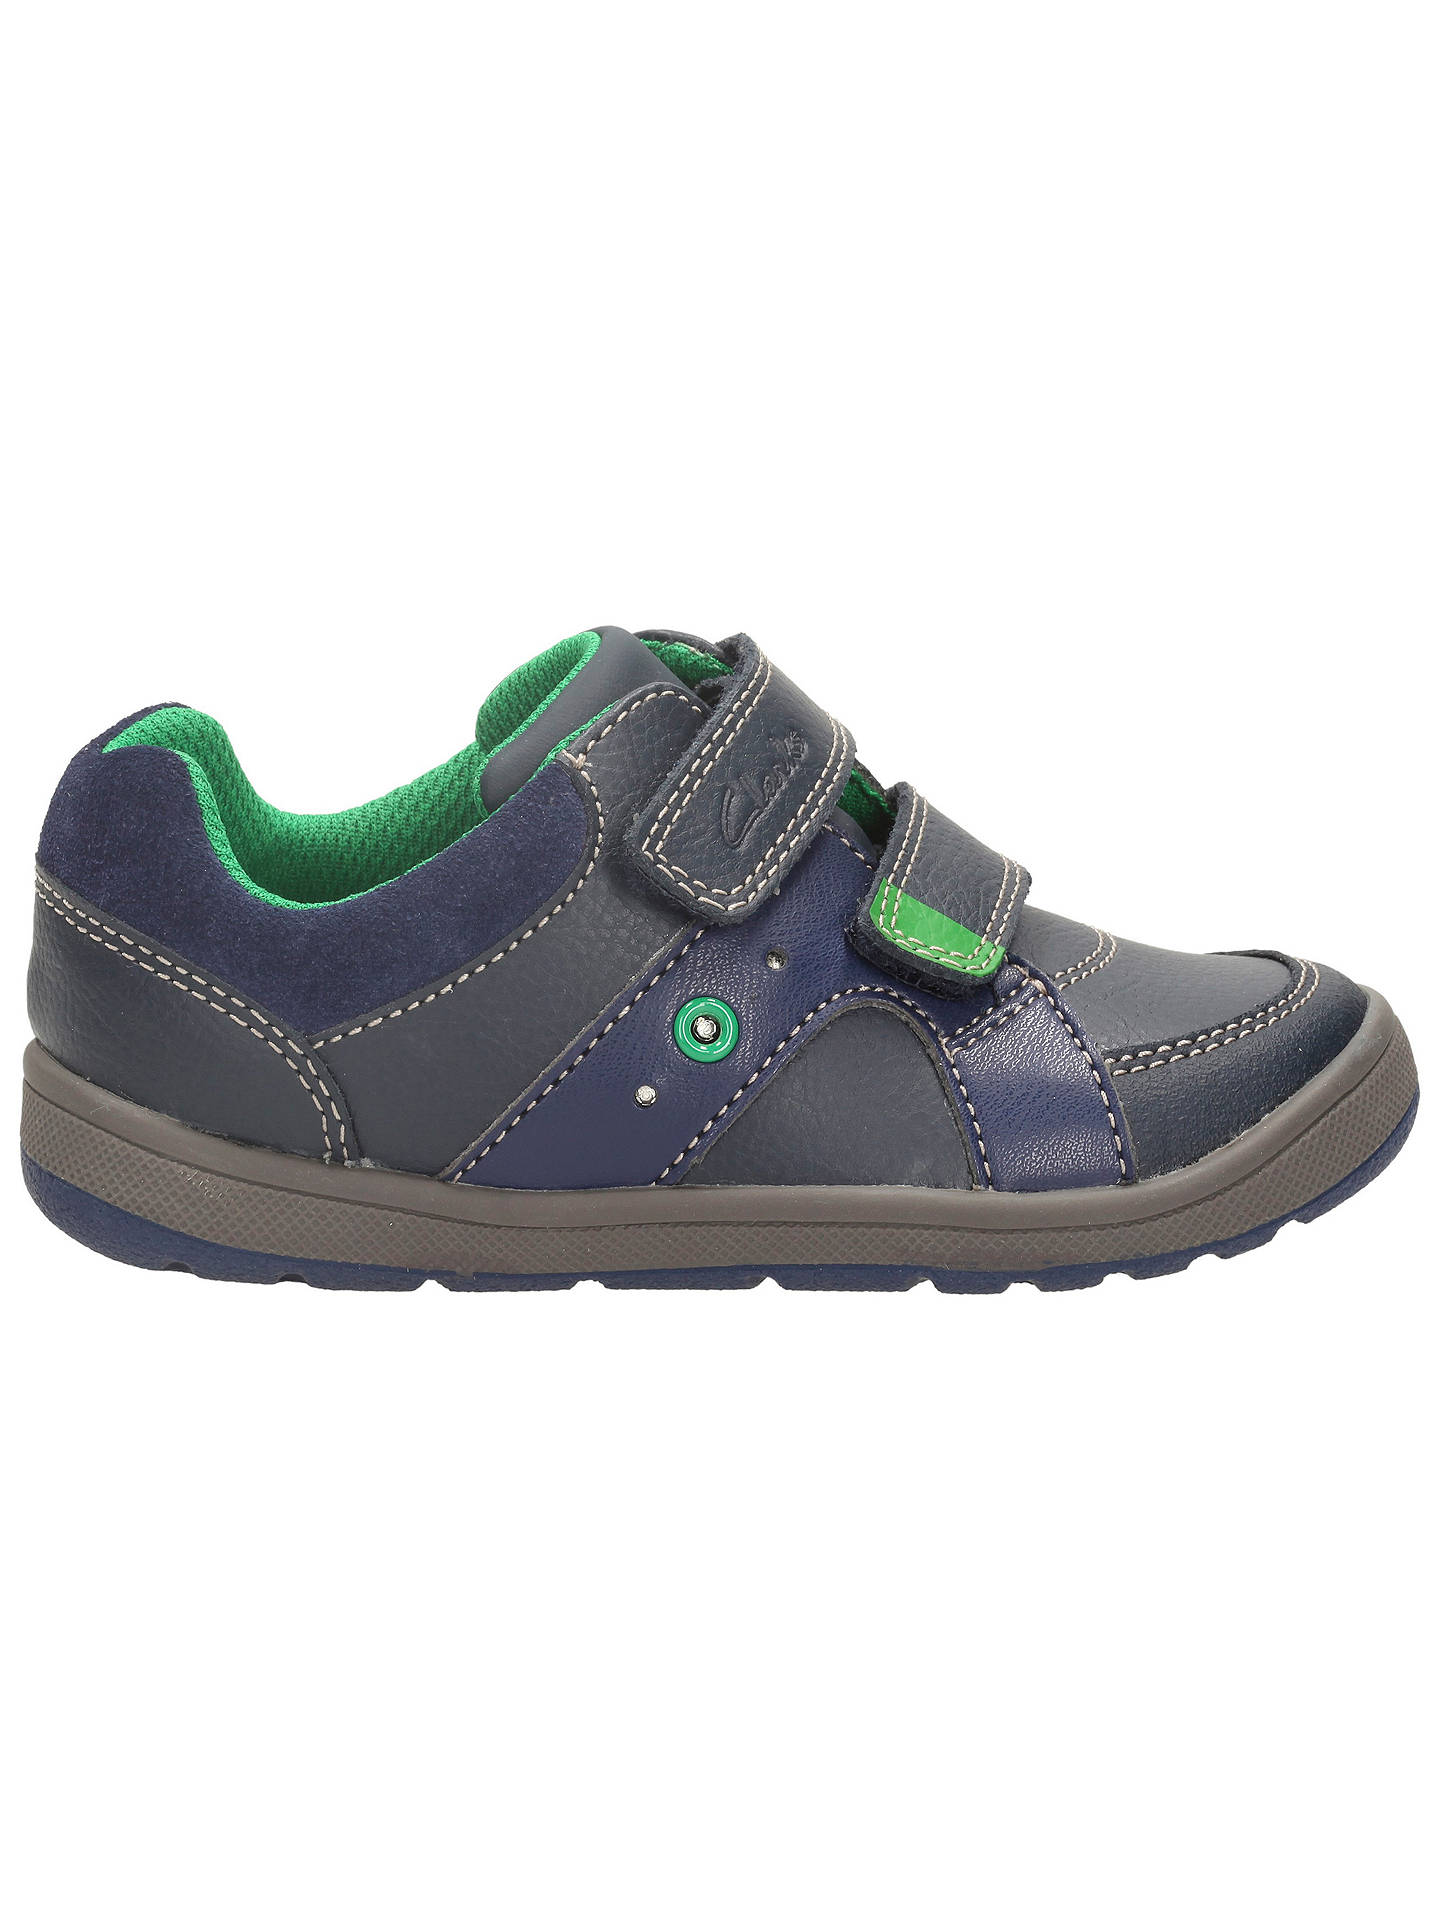 Boys Clarks Maltby Pop Casual Shoes Jungenschuhe Kleidung